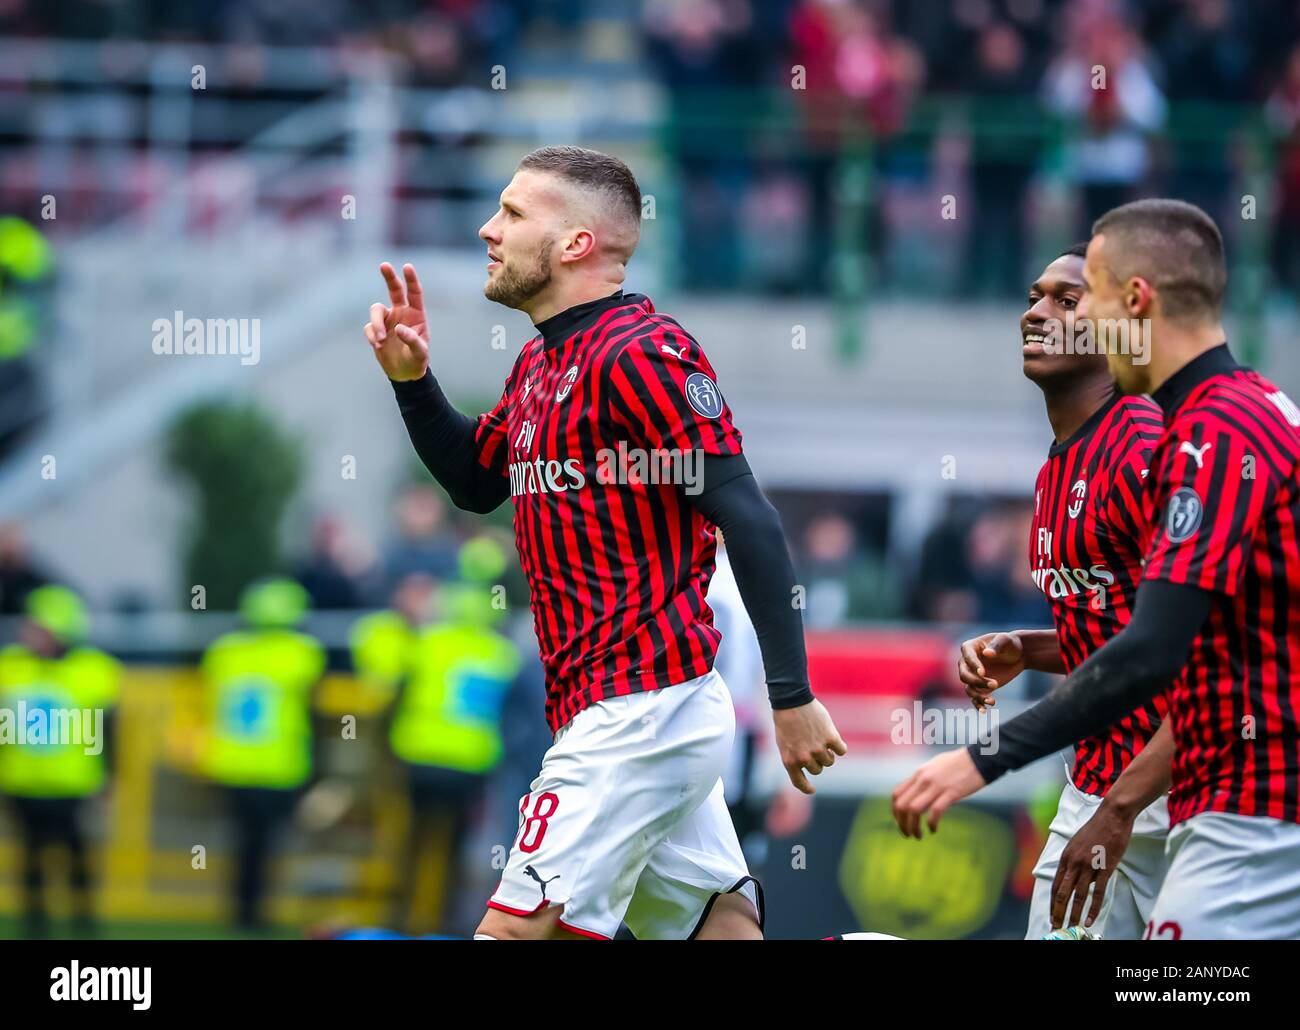 Ac Milan High Resolution Stock Photography And Images Alamy